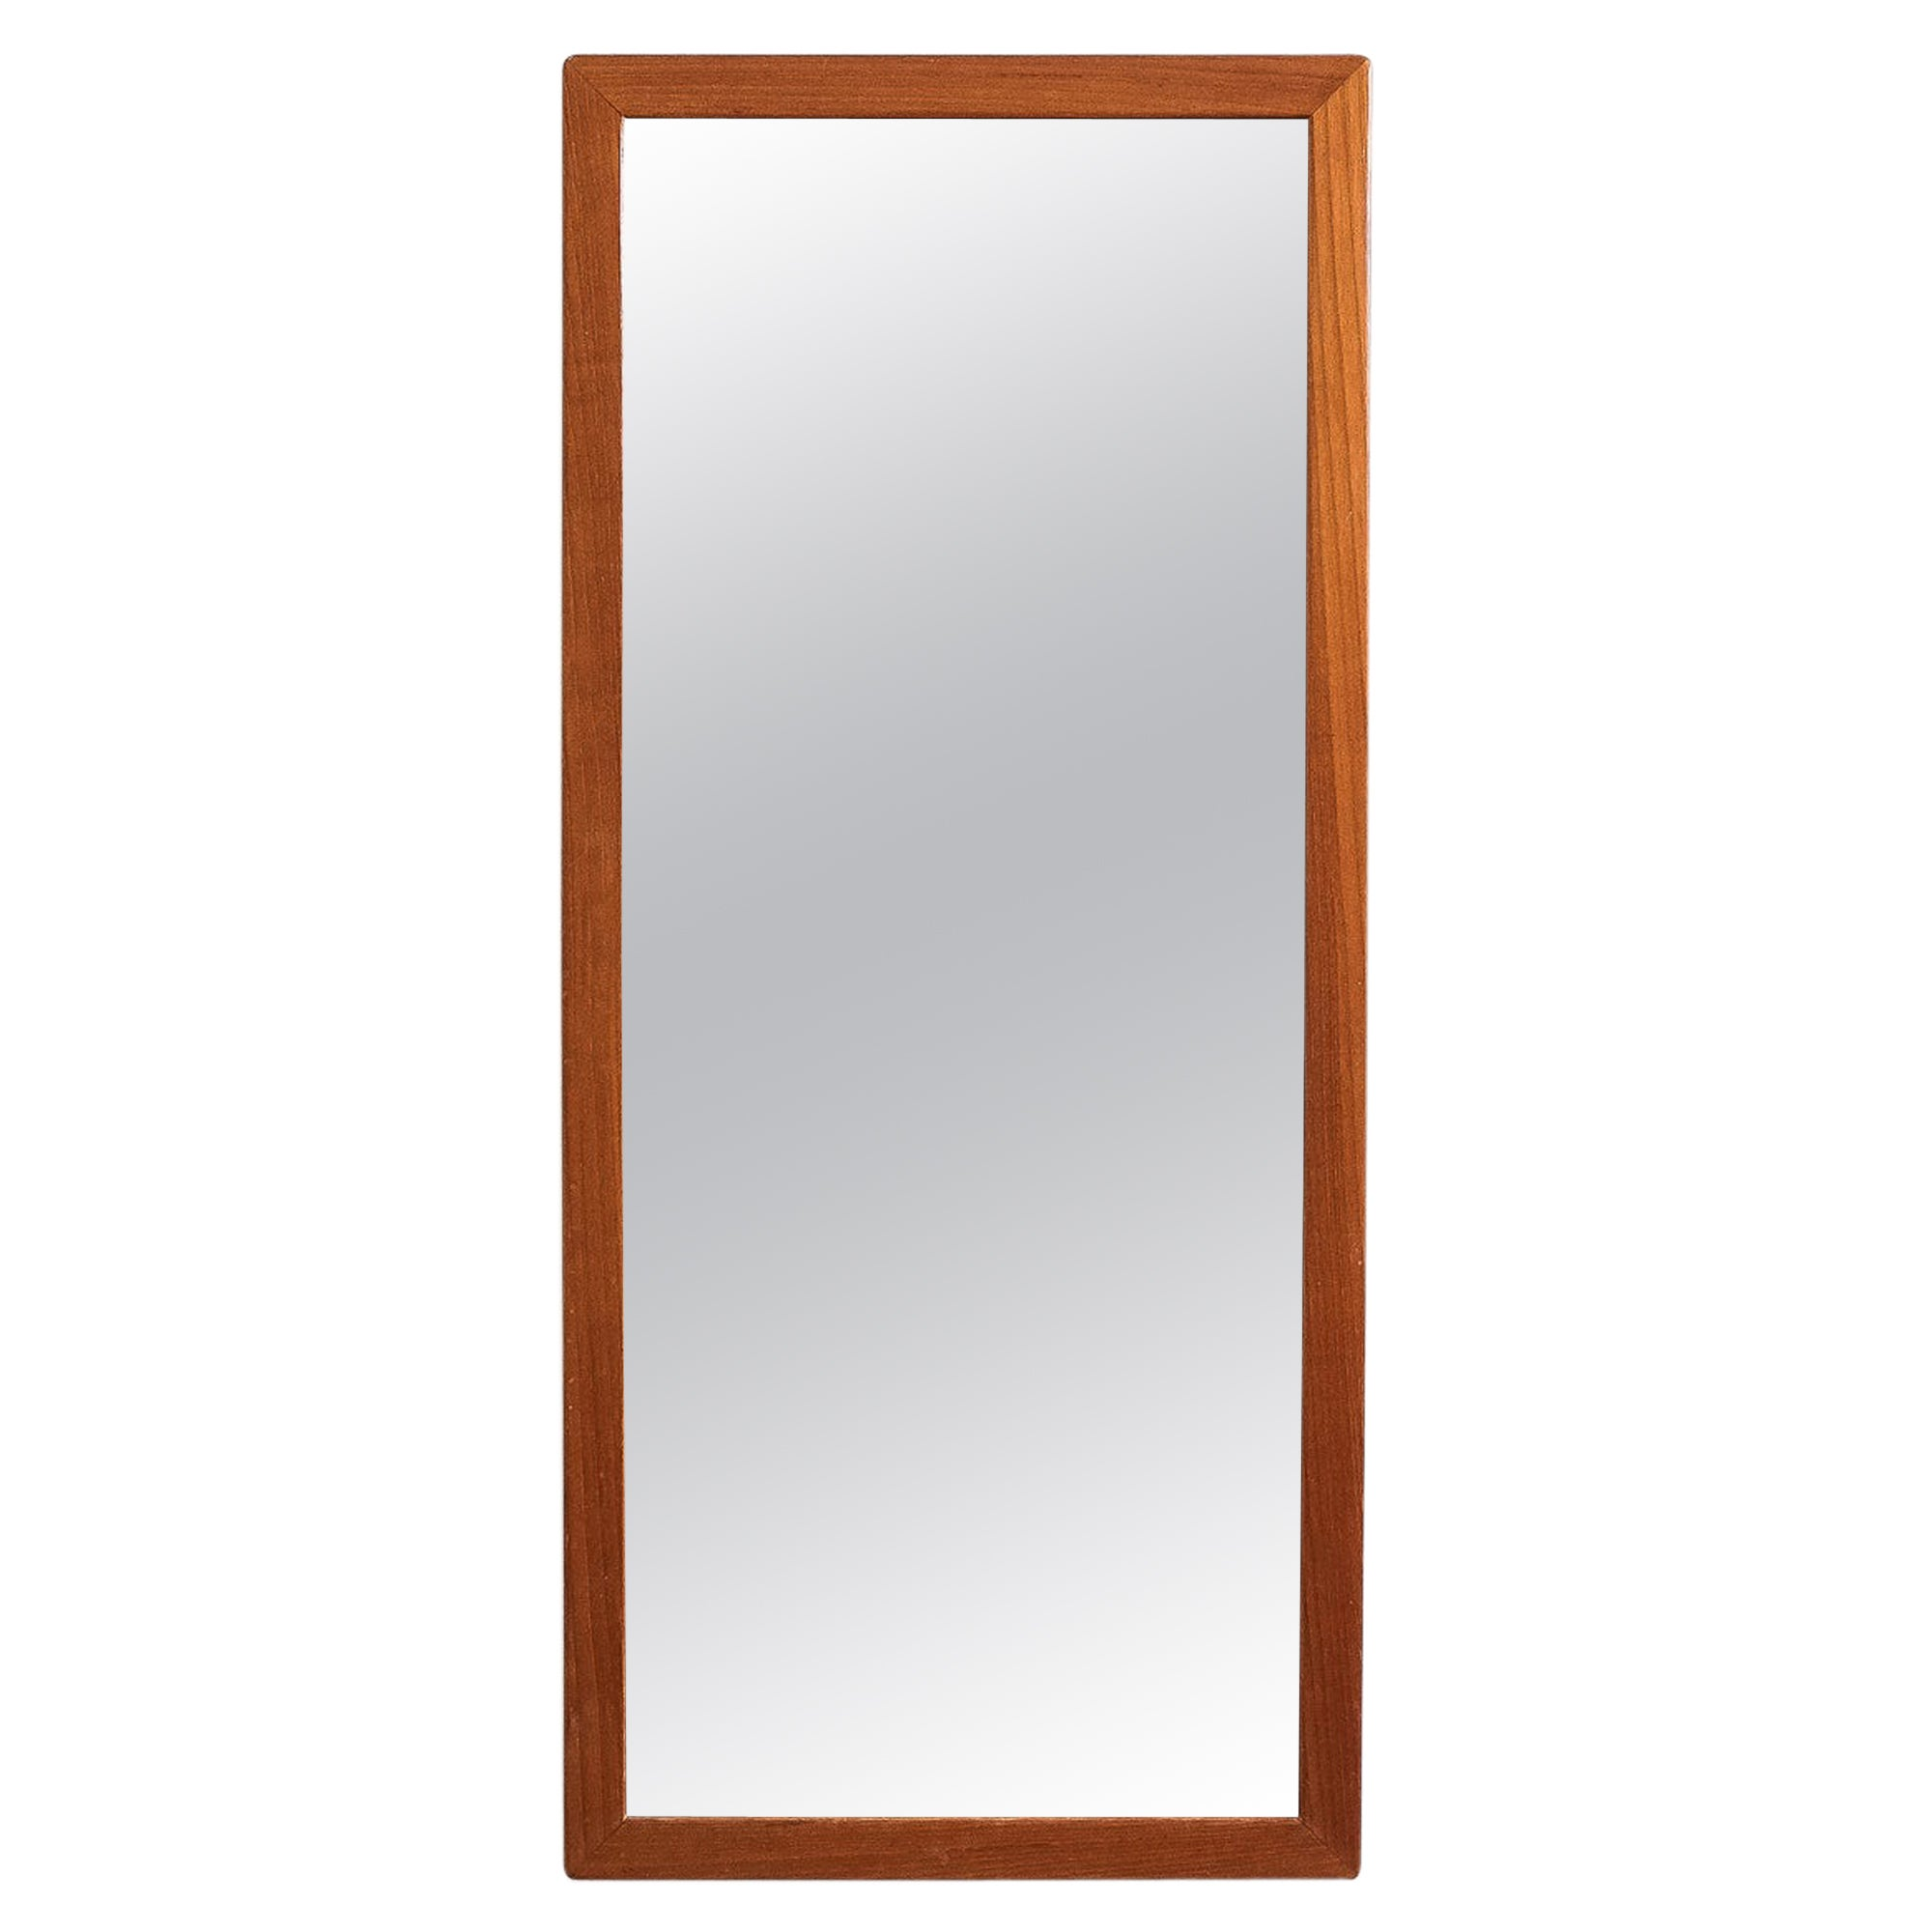 Large Midcentury Teak Wall Mirror, Sweden, 1960s